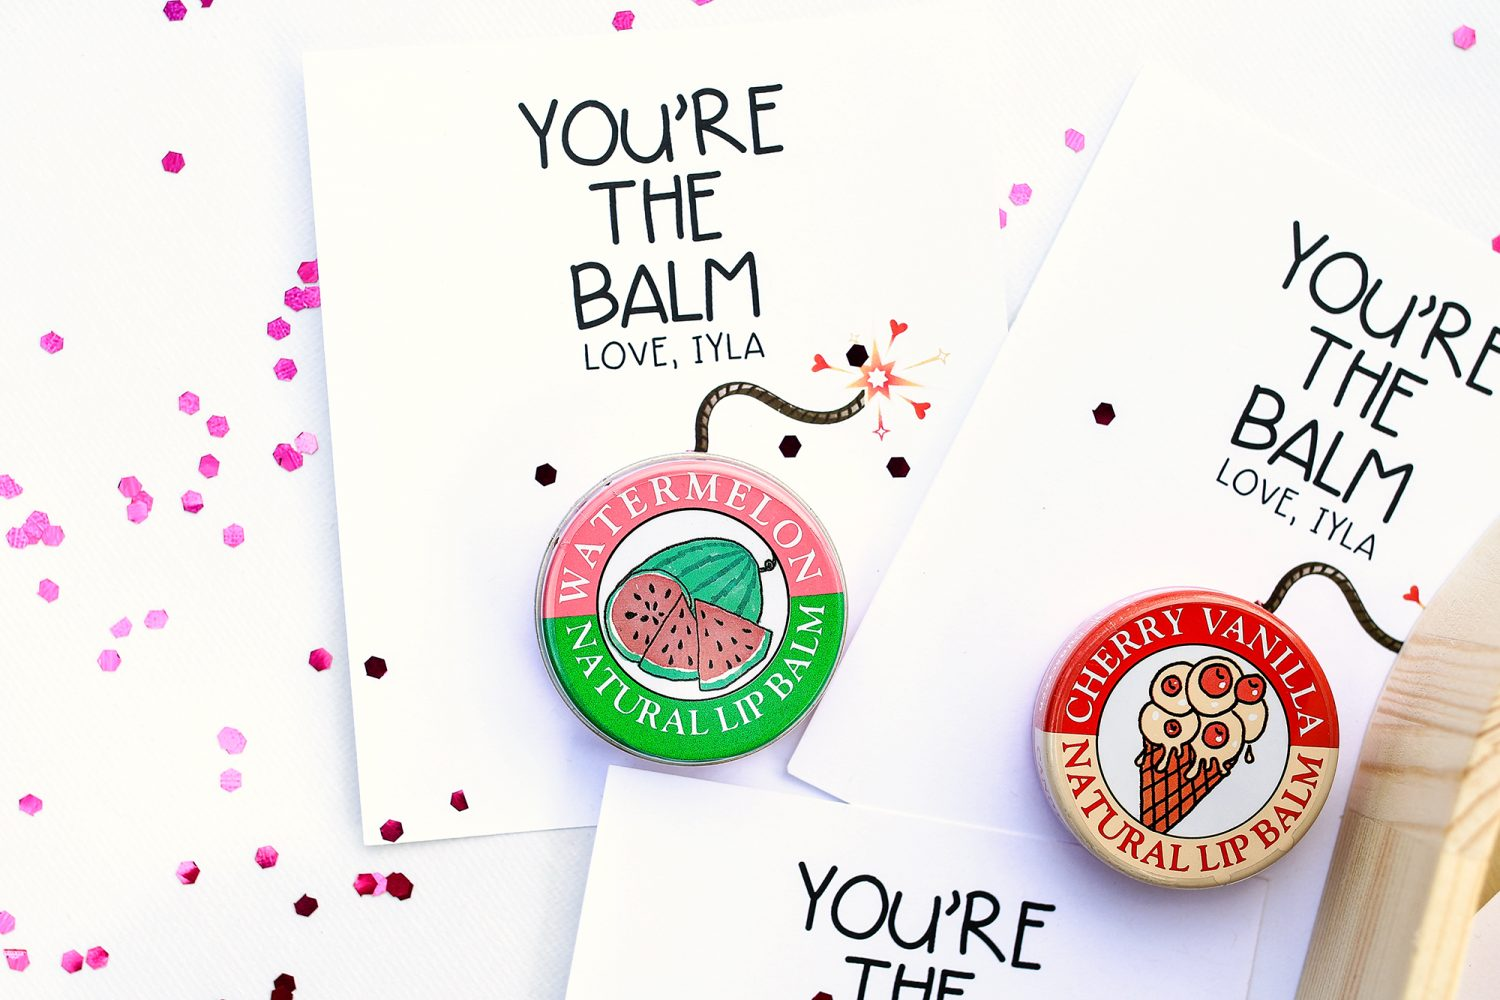 you're the balm, you're the bomb, valentines day, valentine, kids valentine, gift idea, diy, kids craft, crafts for kids, 2019, candy, ideas for valentines day, gifts for kids, free printable, valentine printable